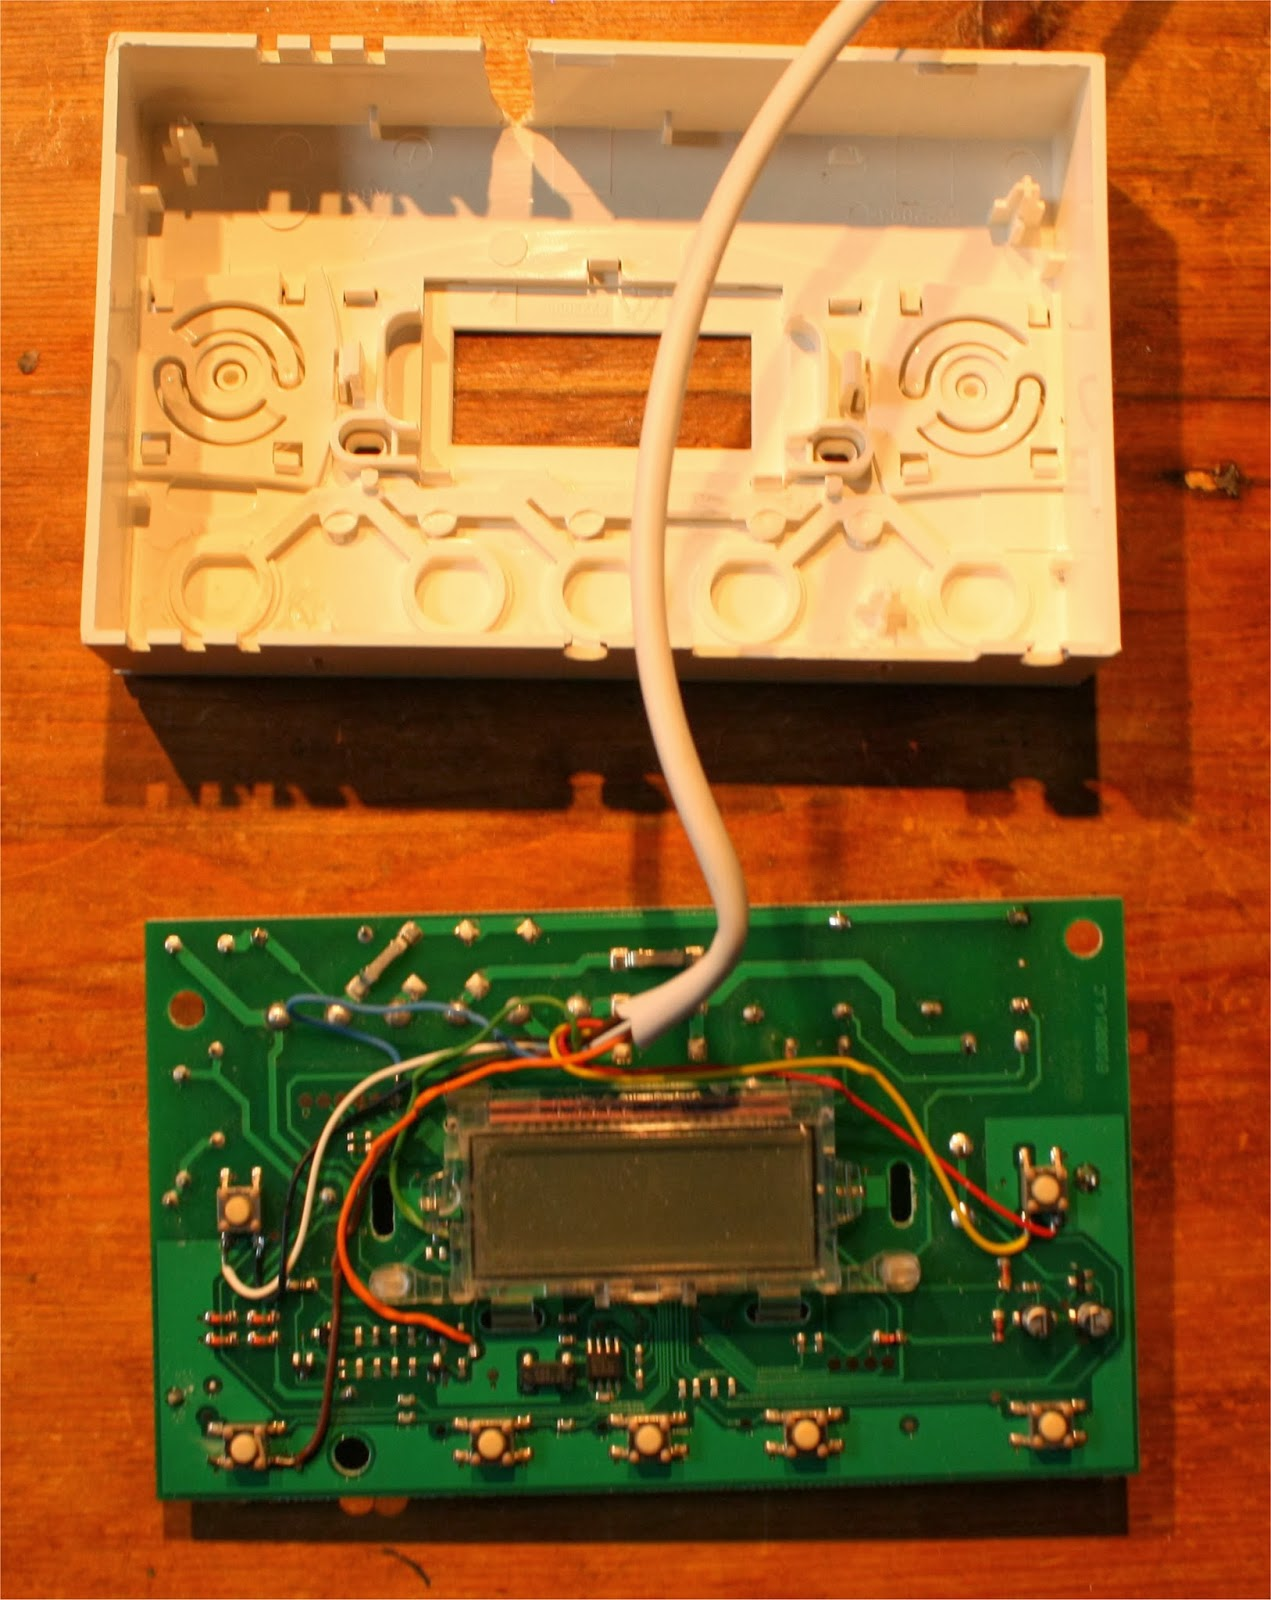 Projects With The Raspberry Pi Central Heating Gpio Ruby Wiringpi This Gives An Indication Of Current State And Hot Water These Are Then Connected To Two Input Lines On